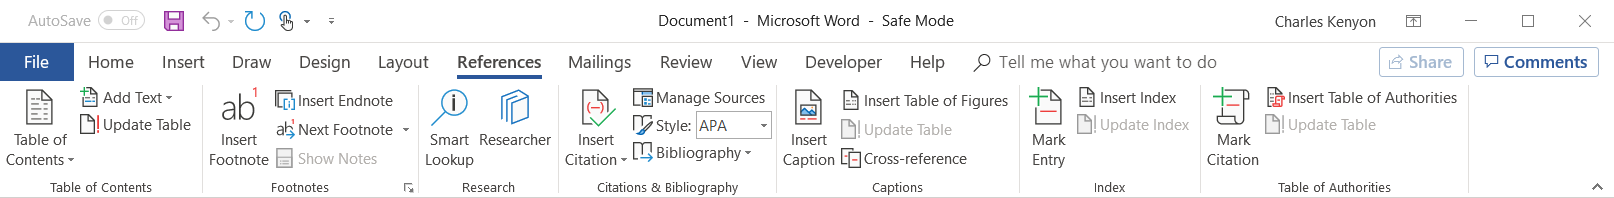 The Ribbons Of Microsoft Word 2007 2019